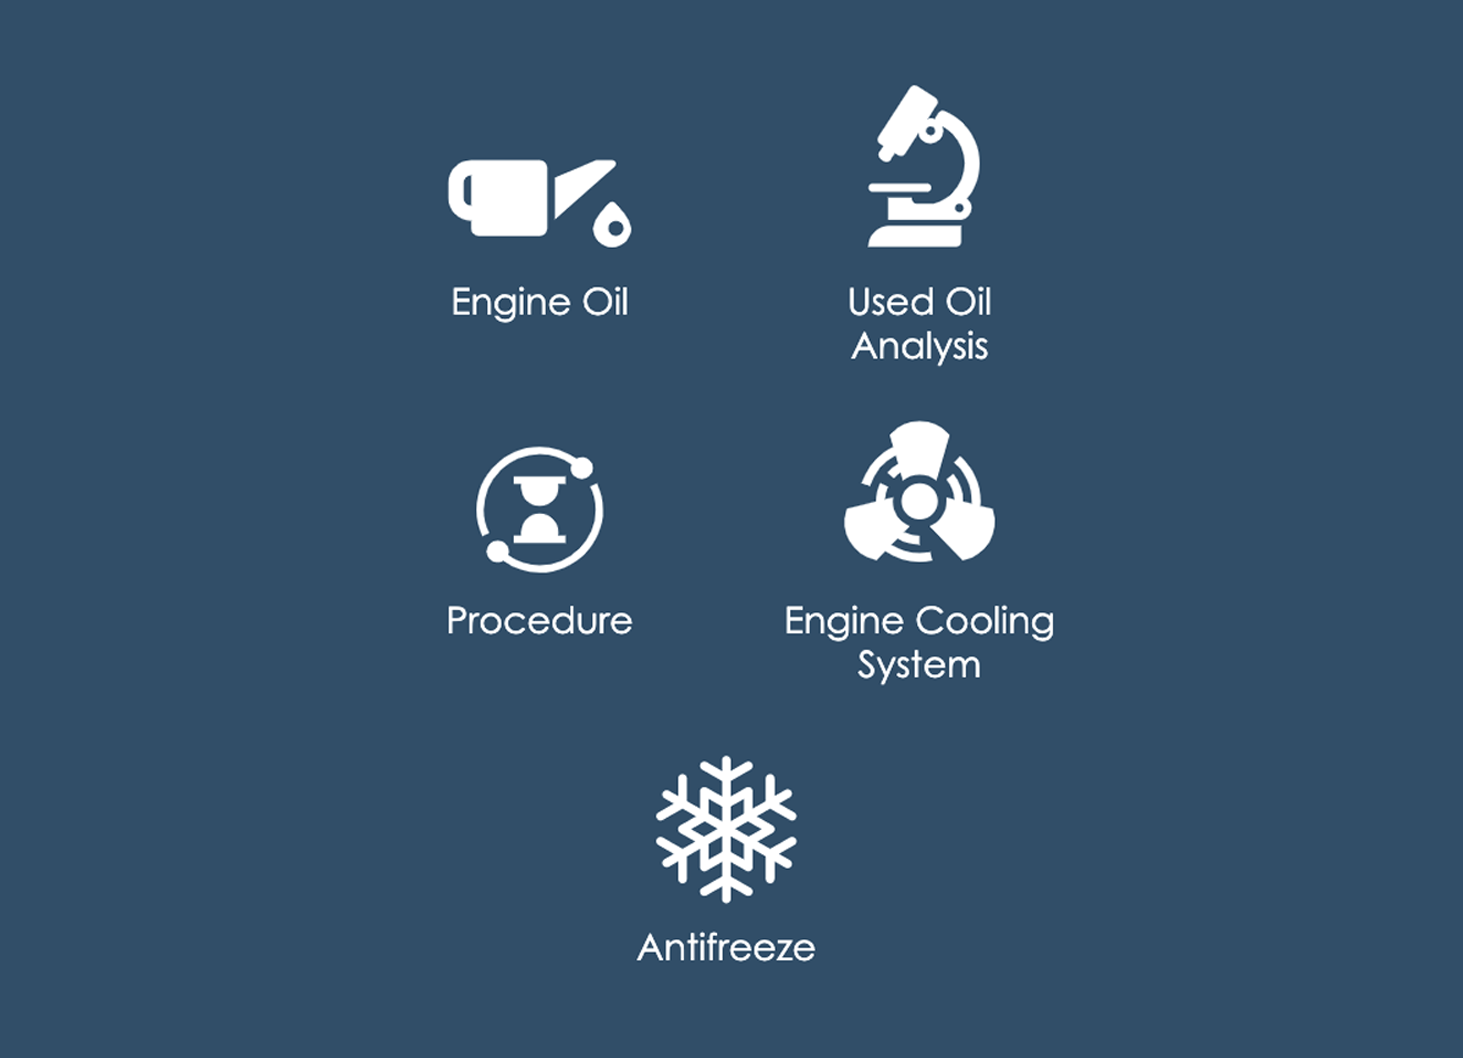 Icons for Engine Oil, Used Oil Analysis, Procedure, Engine Cooling System, Antifreeze